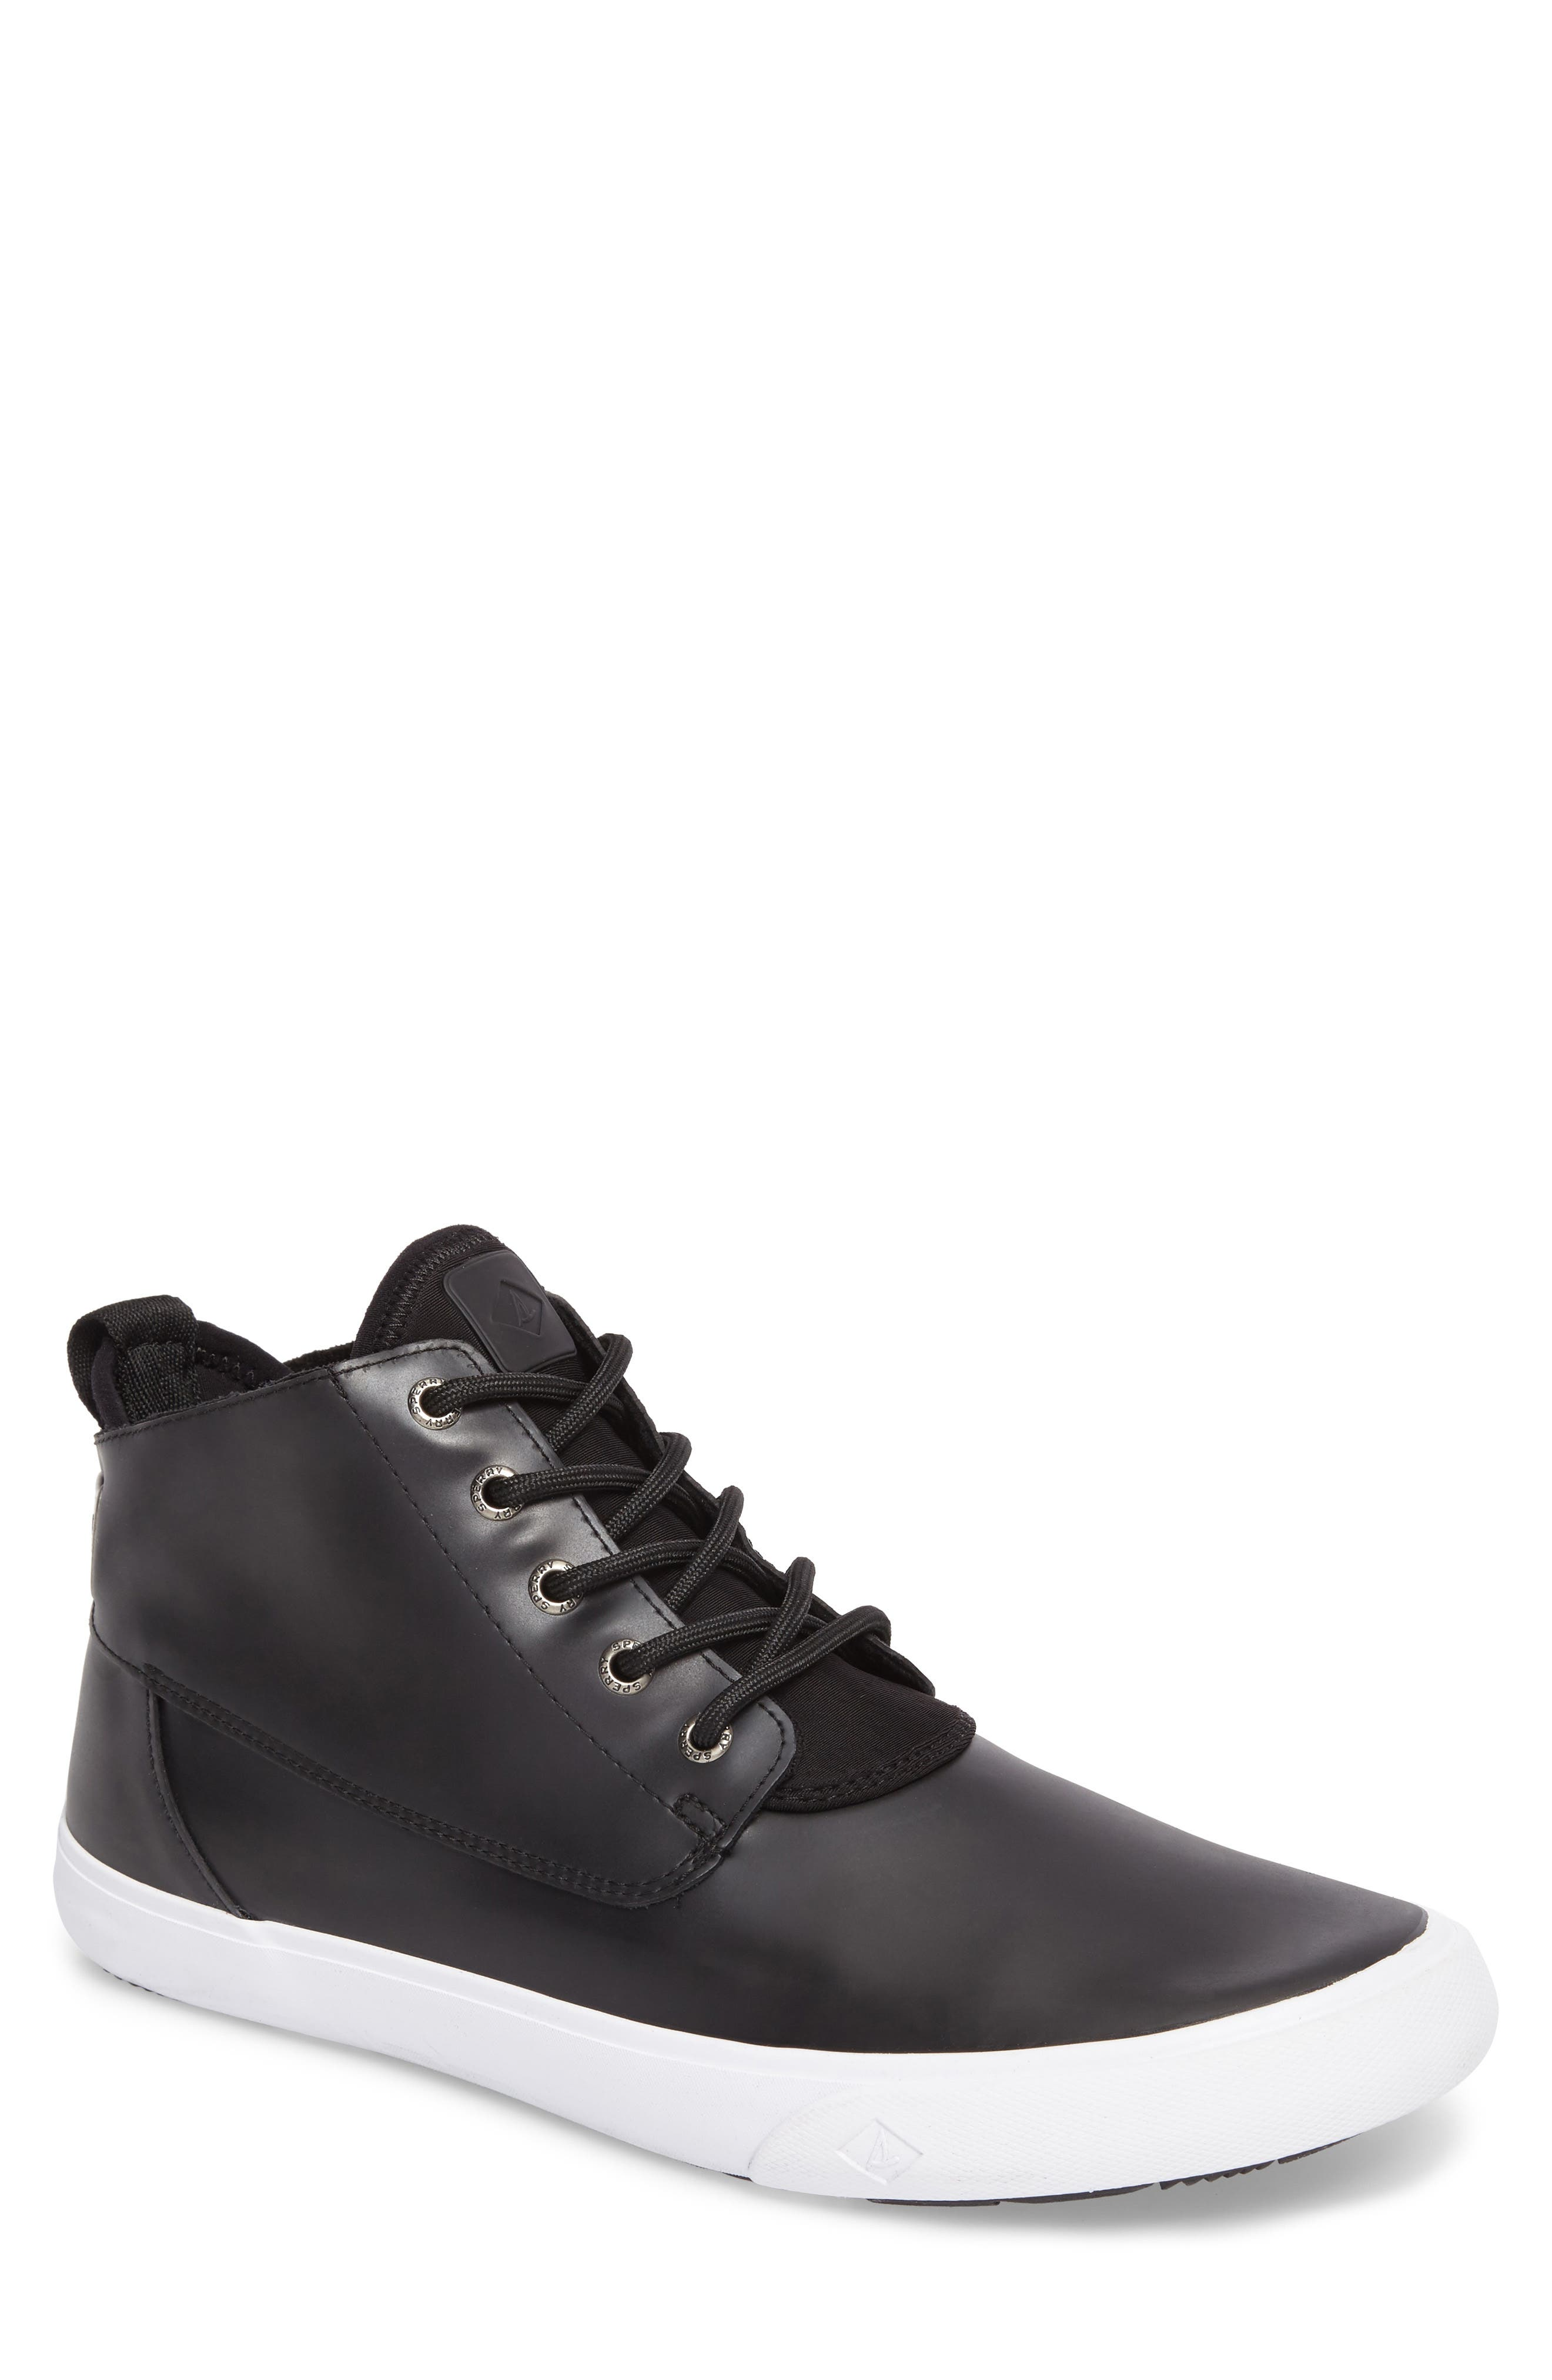 Cutwater Chukka Boot,                         Main,                         color, Black Leather